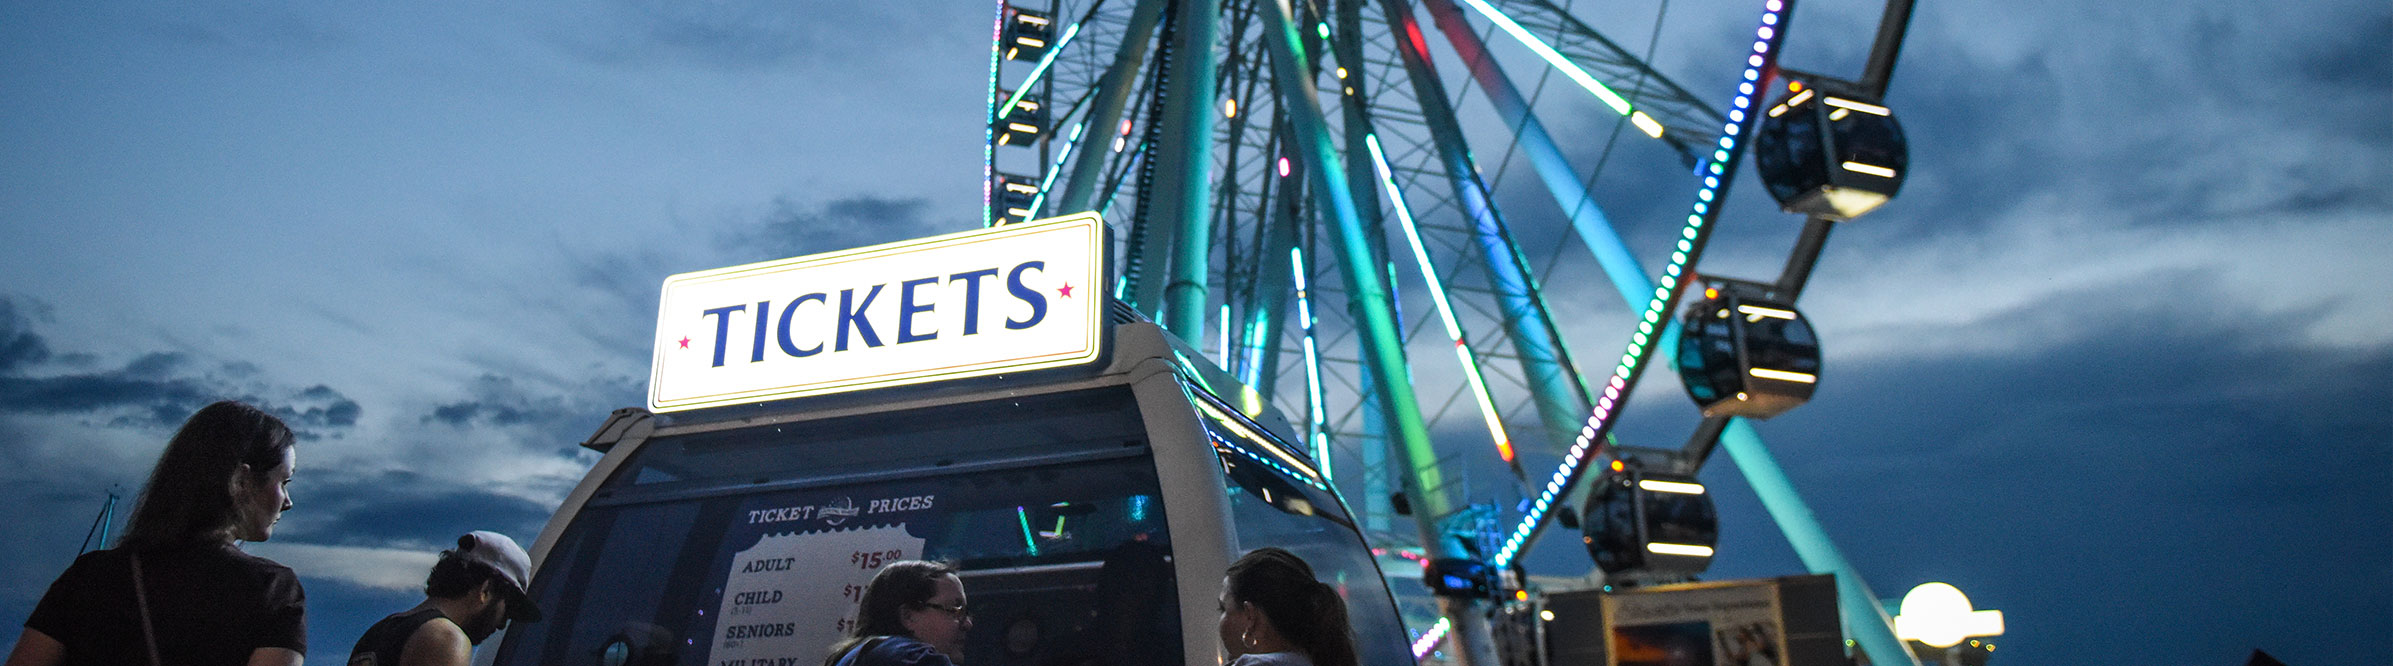 wheel-tickets